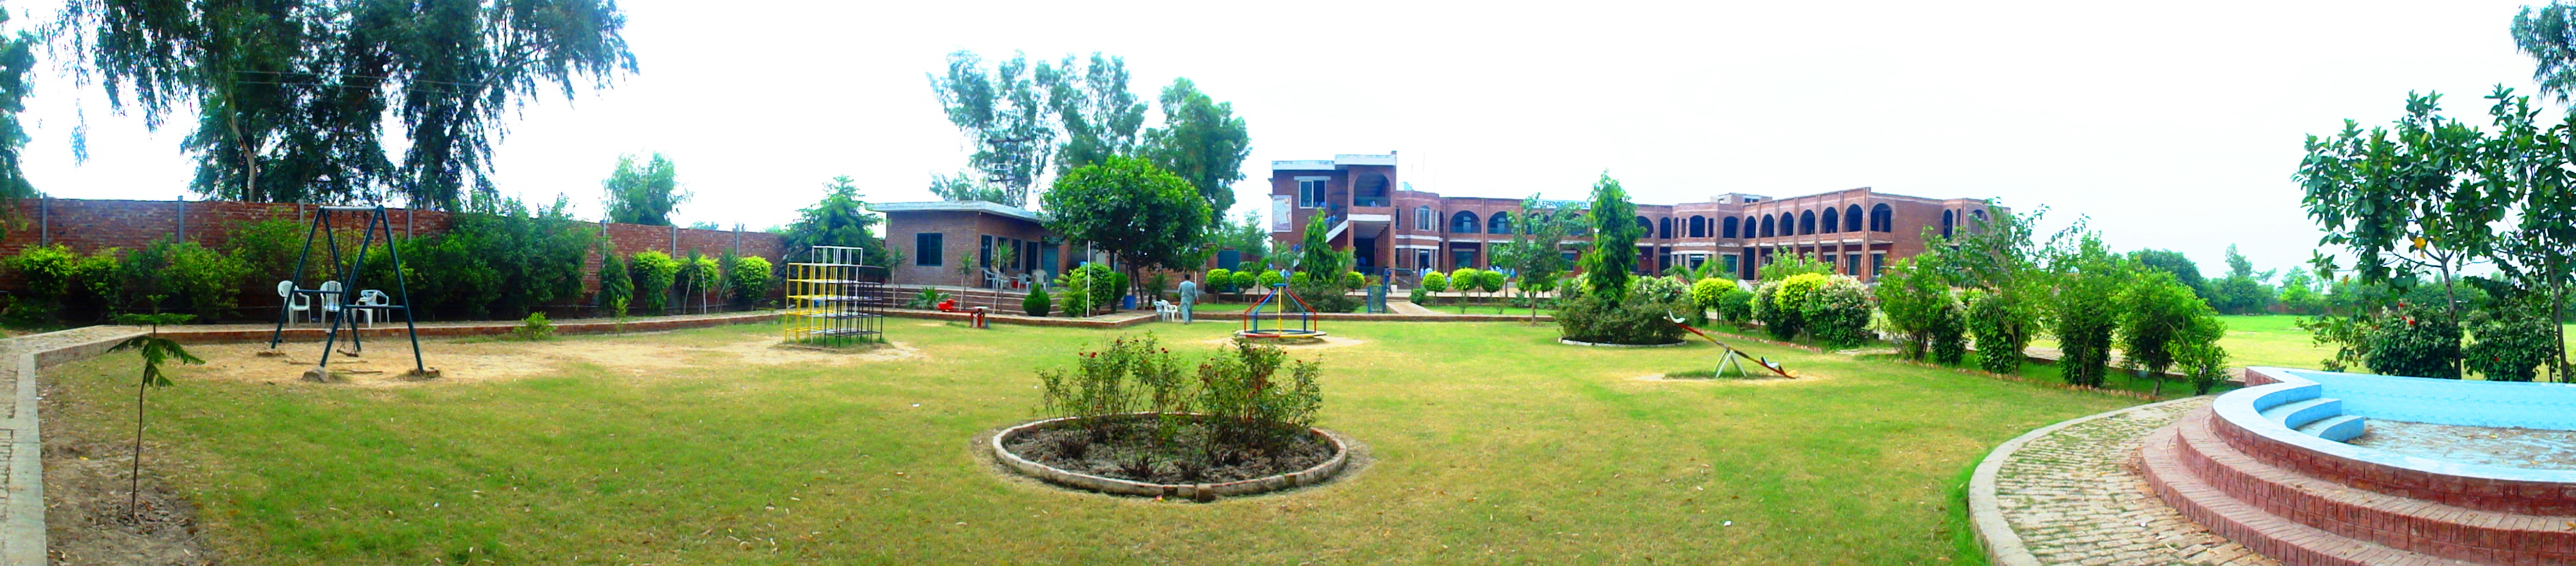 The Learning School, Kot Radha Kishen (Kasur - Pakistan) - a Beautiful Campus.JPG